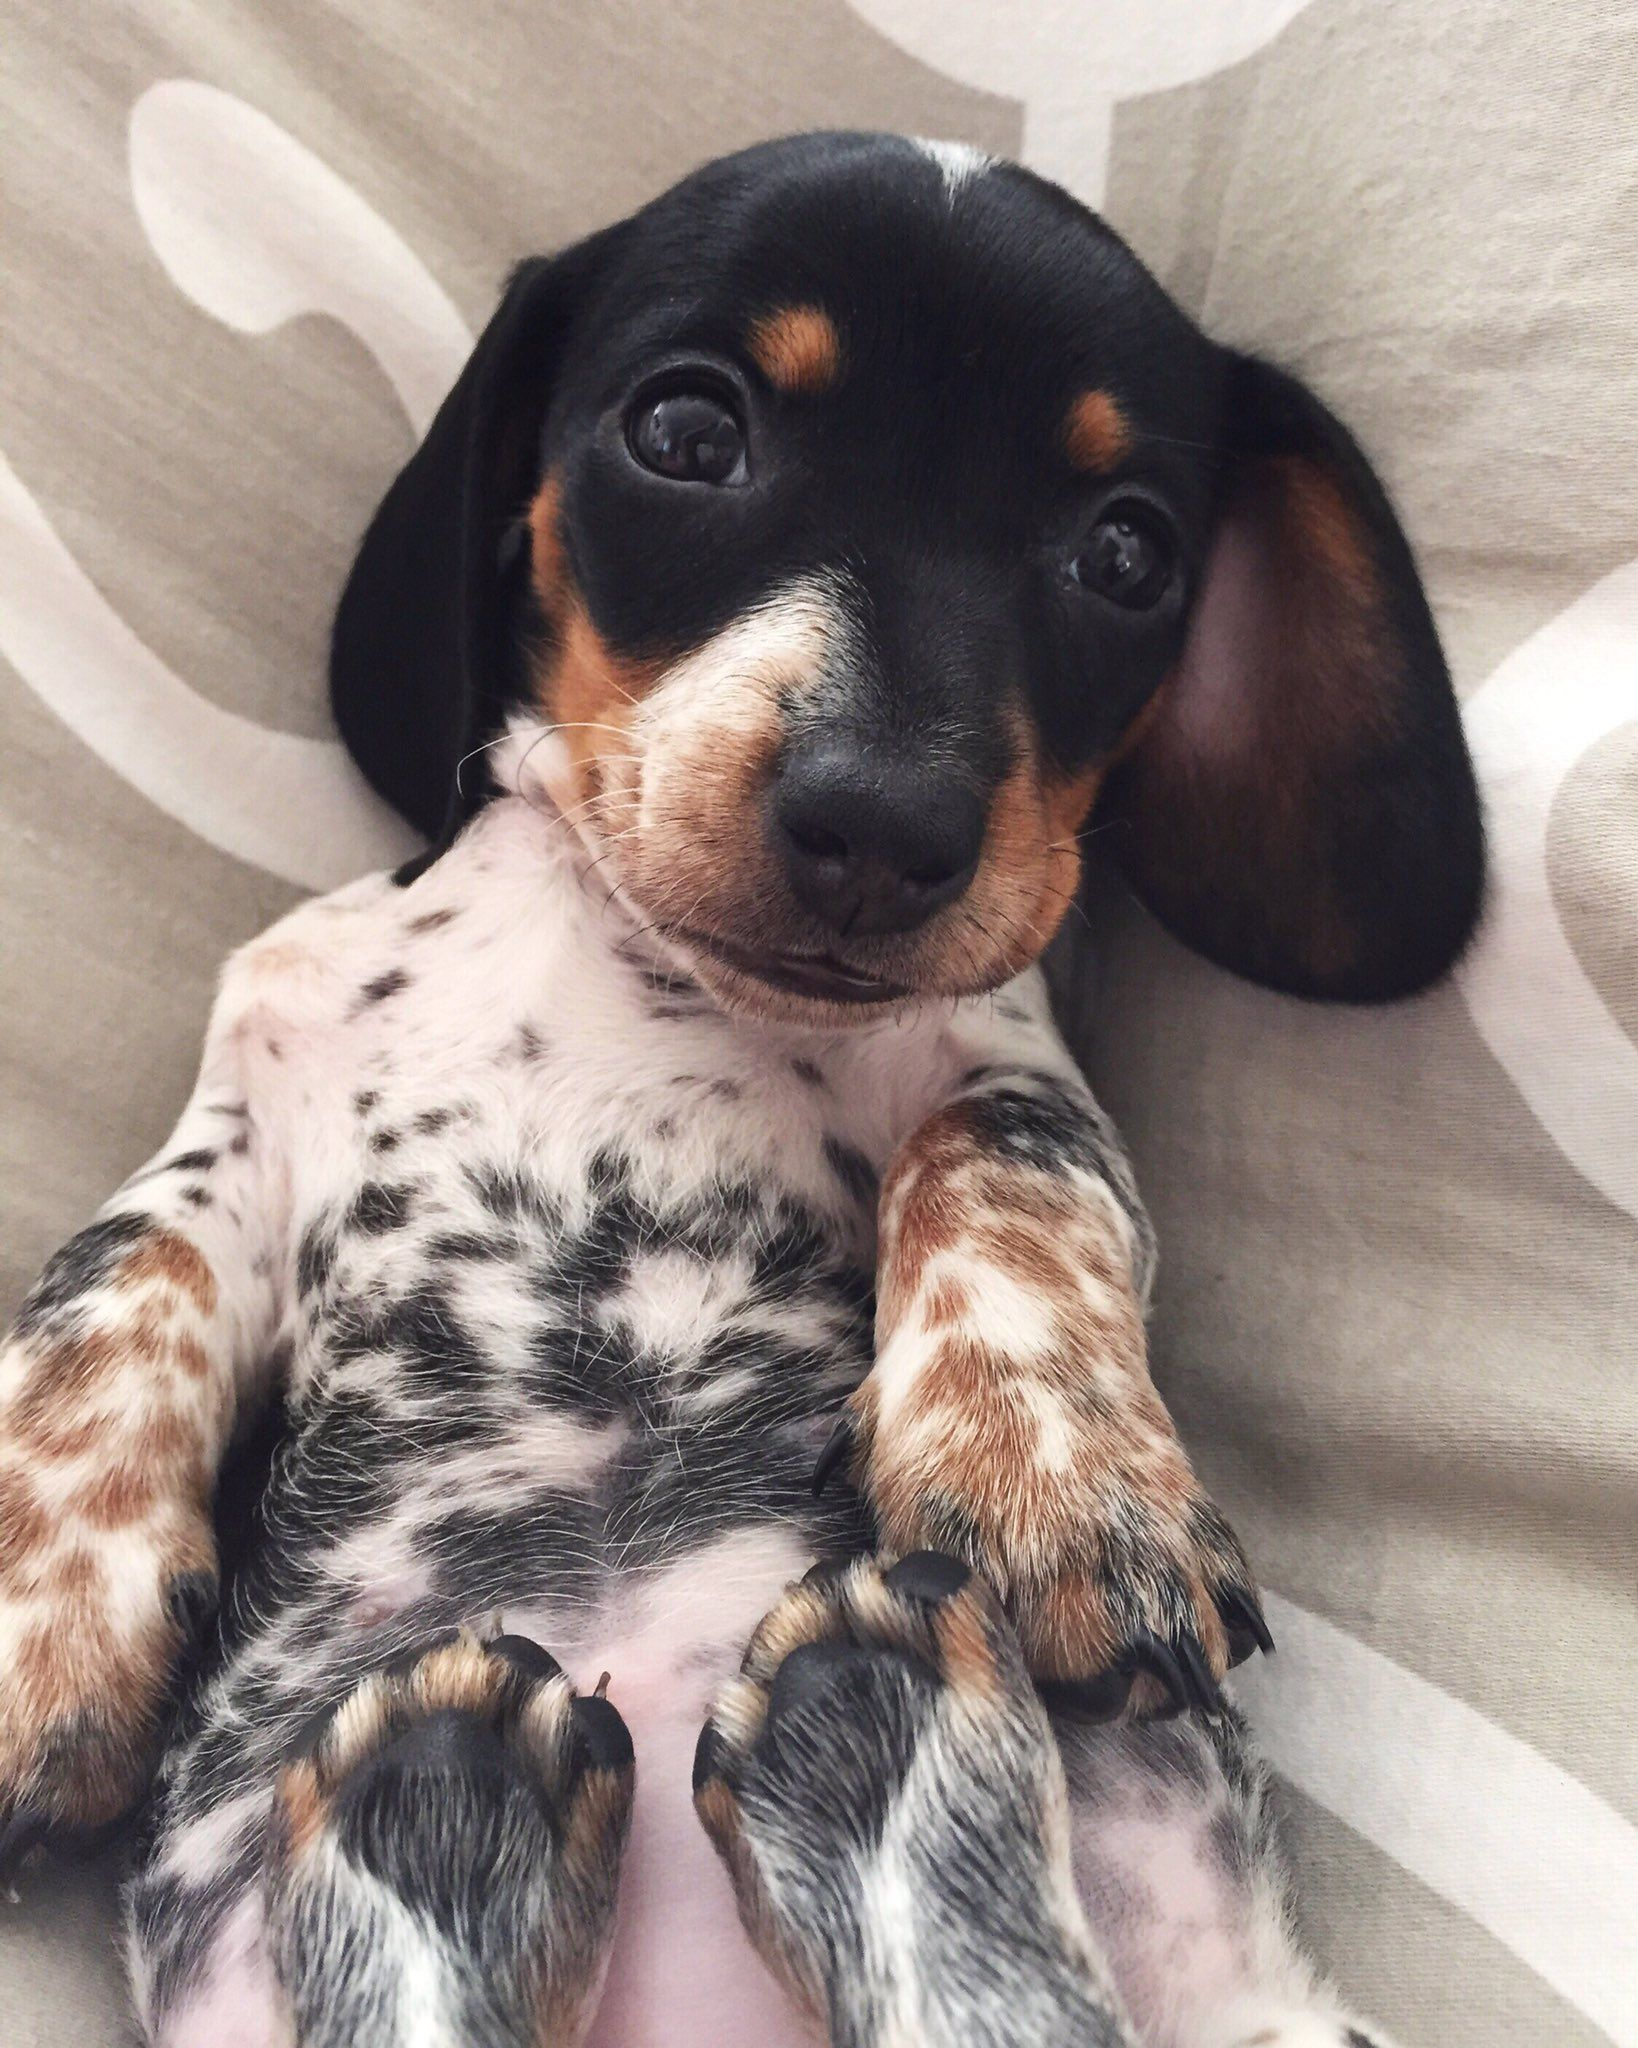 Moo' - Adorable Little Reese the Miniature #dachshund Puppy … | Baby  animals, Dachshund puppies, Cute animals